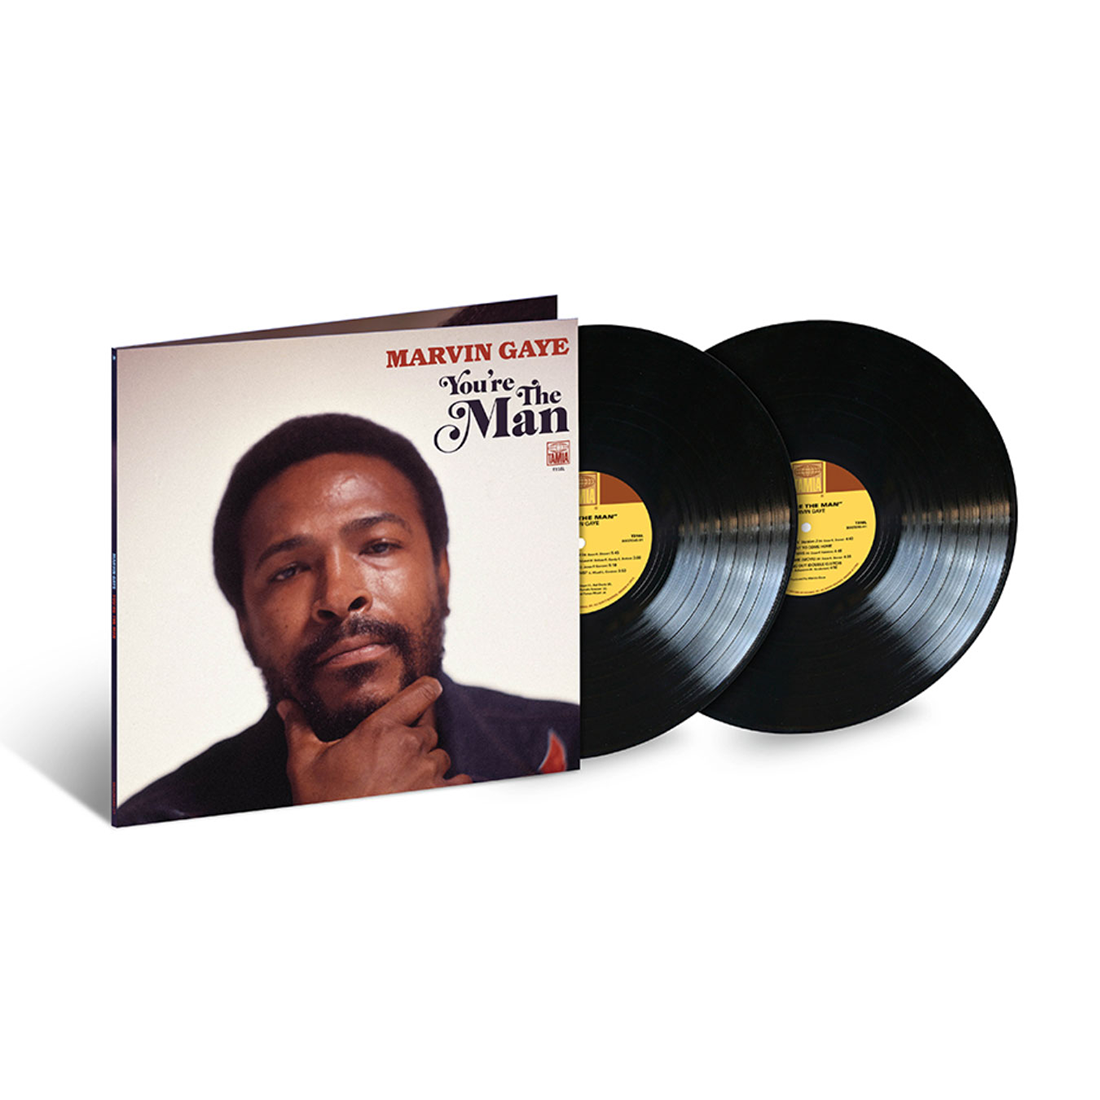 a17b078b7 Marvin Gaye: You're The Man